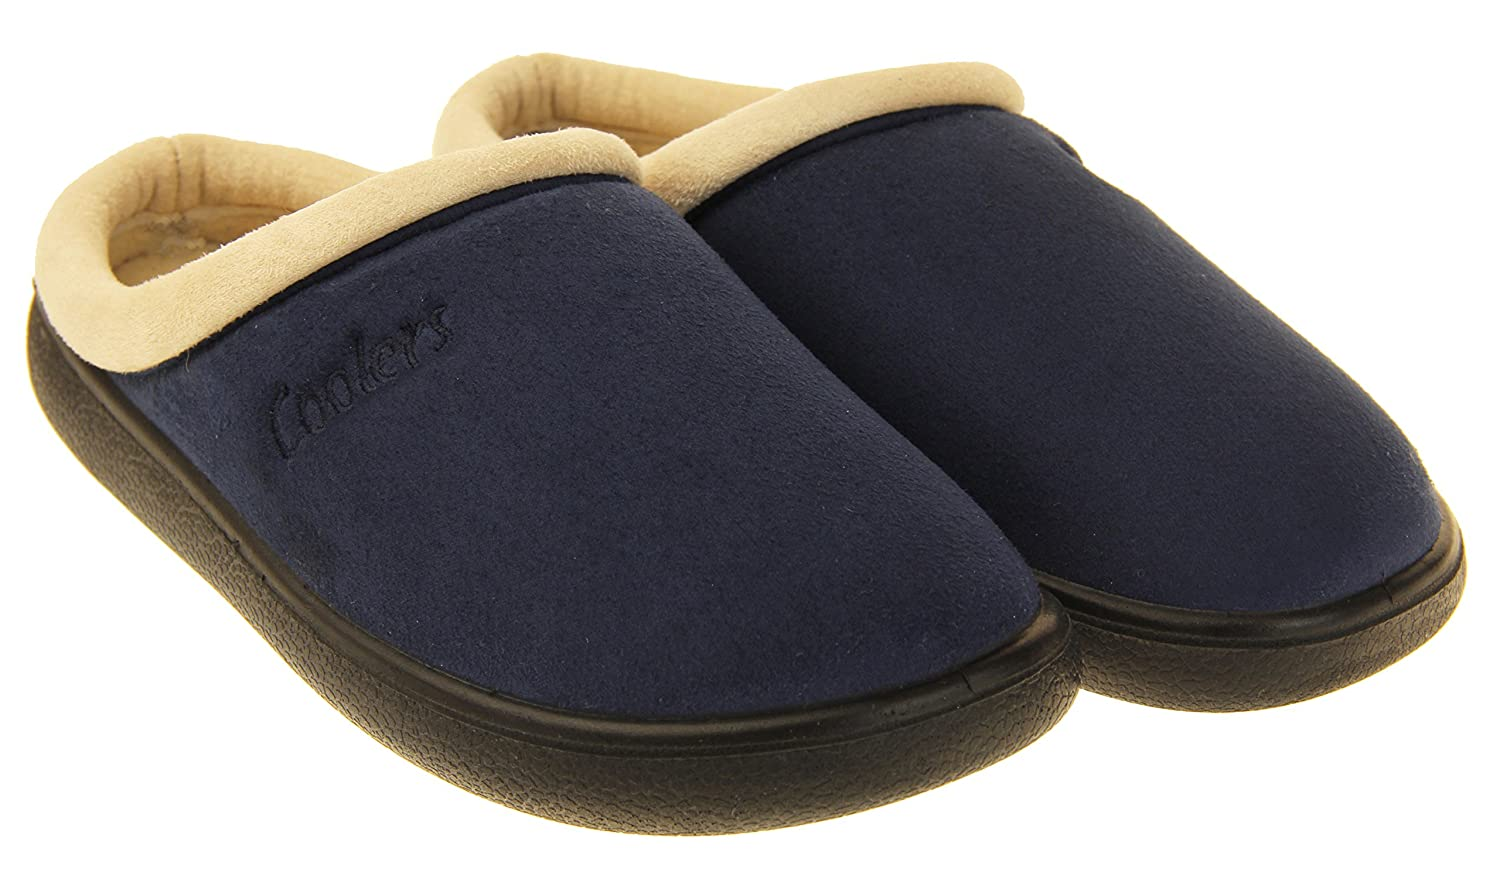 M US Coolers Womens Navy Suede Effect Outdoor Sole Mules Slippers 8 B